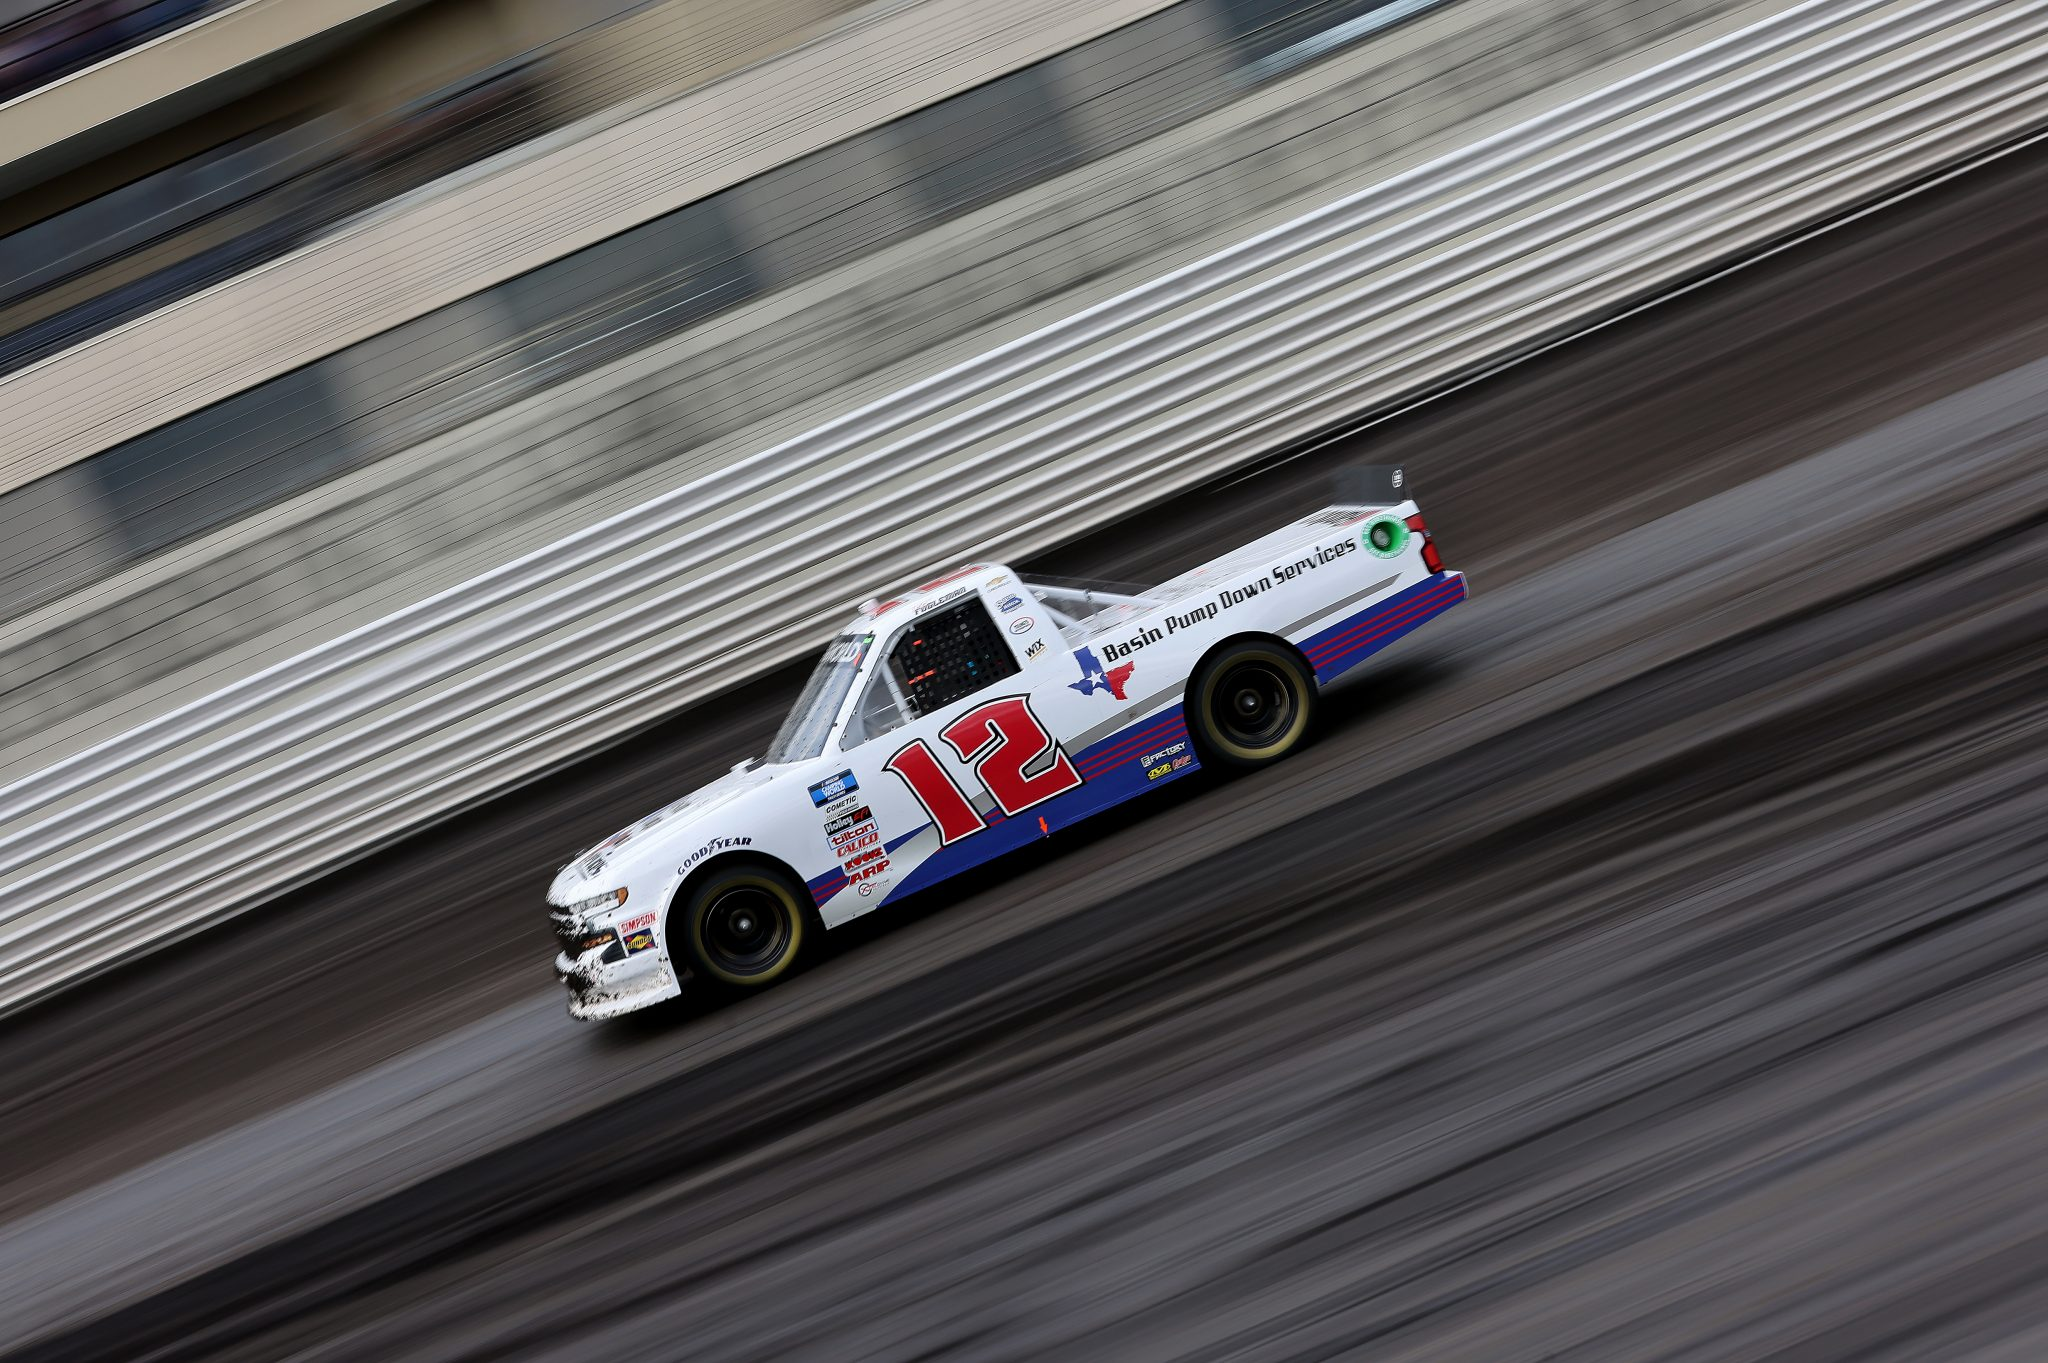 KNOXVILLE, IOWA - JULY 09: Tate Fogleman, driver of the #12 Basin Pump Down Services Chevrolet, drives during qualifying for the NASCAR Camping World Truck Series Corn Belt 150 presented by Premier Chevy Dealers at Knoxville Raceway on July 09, 2021 in Knoxville, Iowa. (Photo by James Gilbert/Getty Images) | Getty Images